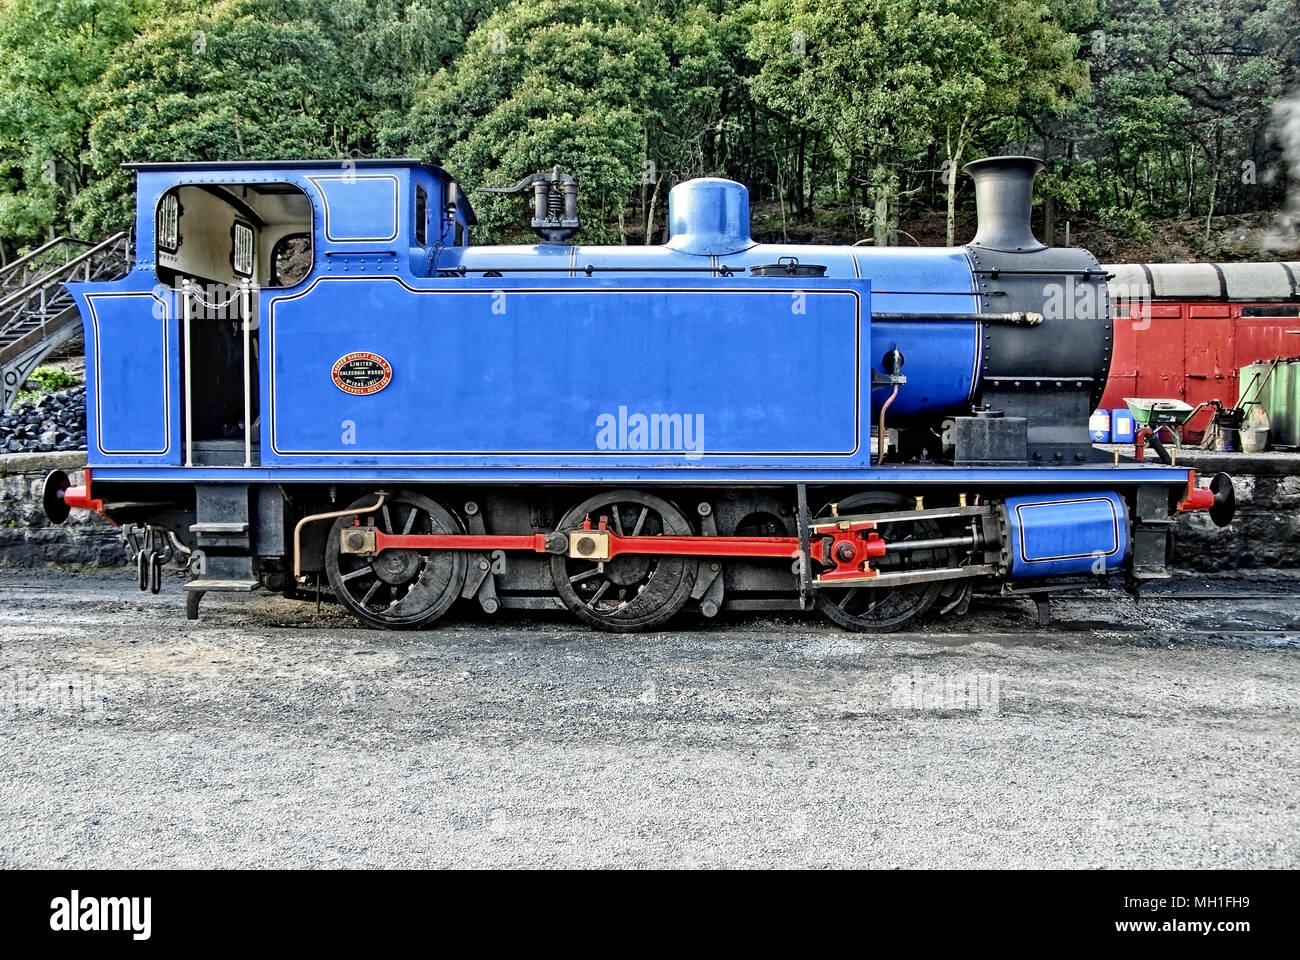 Barclay 0-6-0 - Stock Image